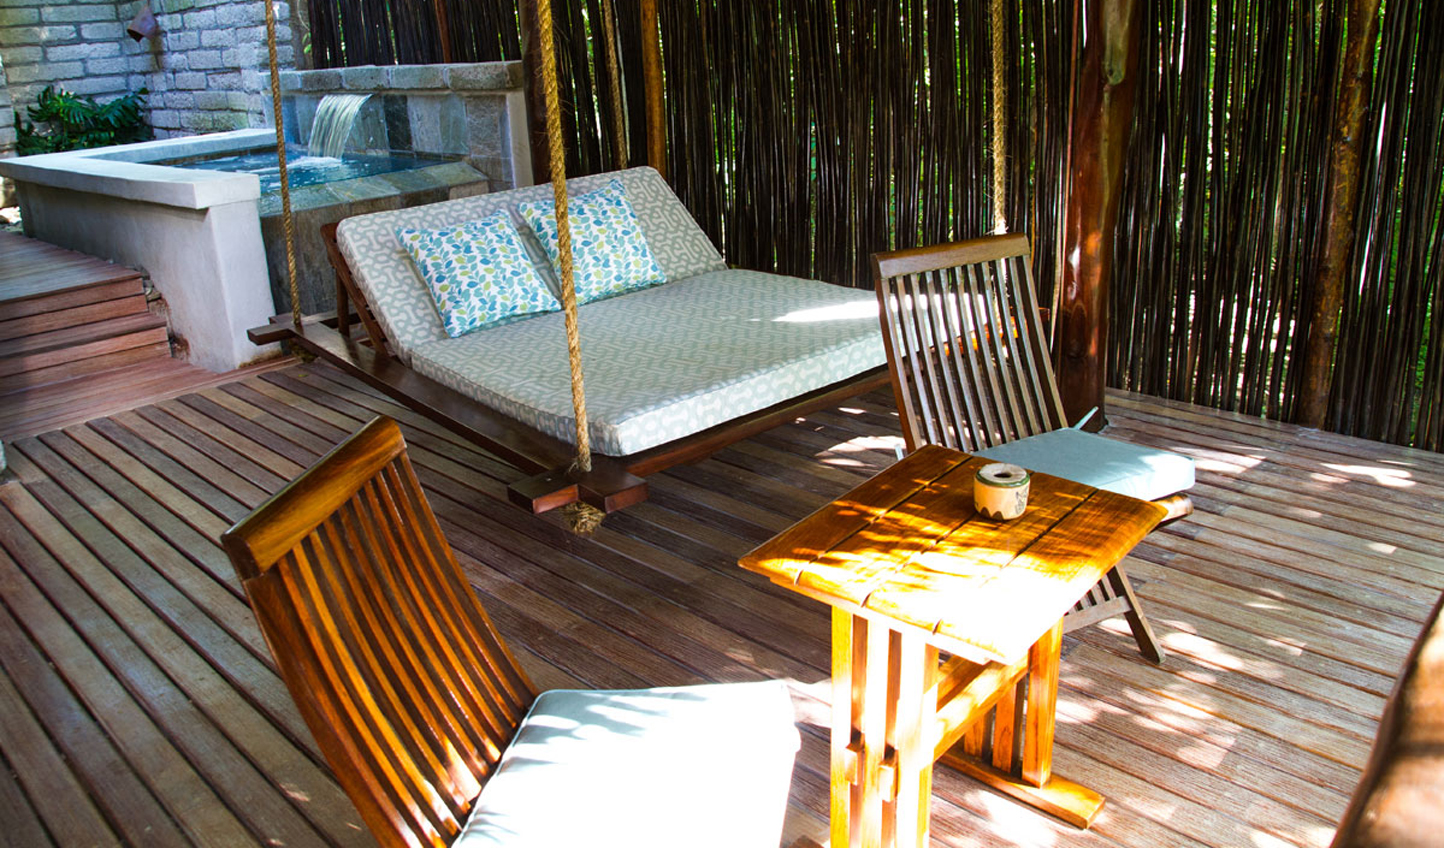 Relax on your private terrace at the end of each day